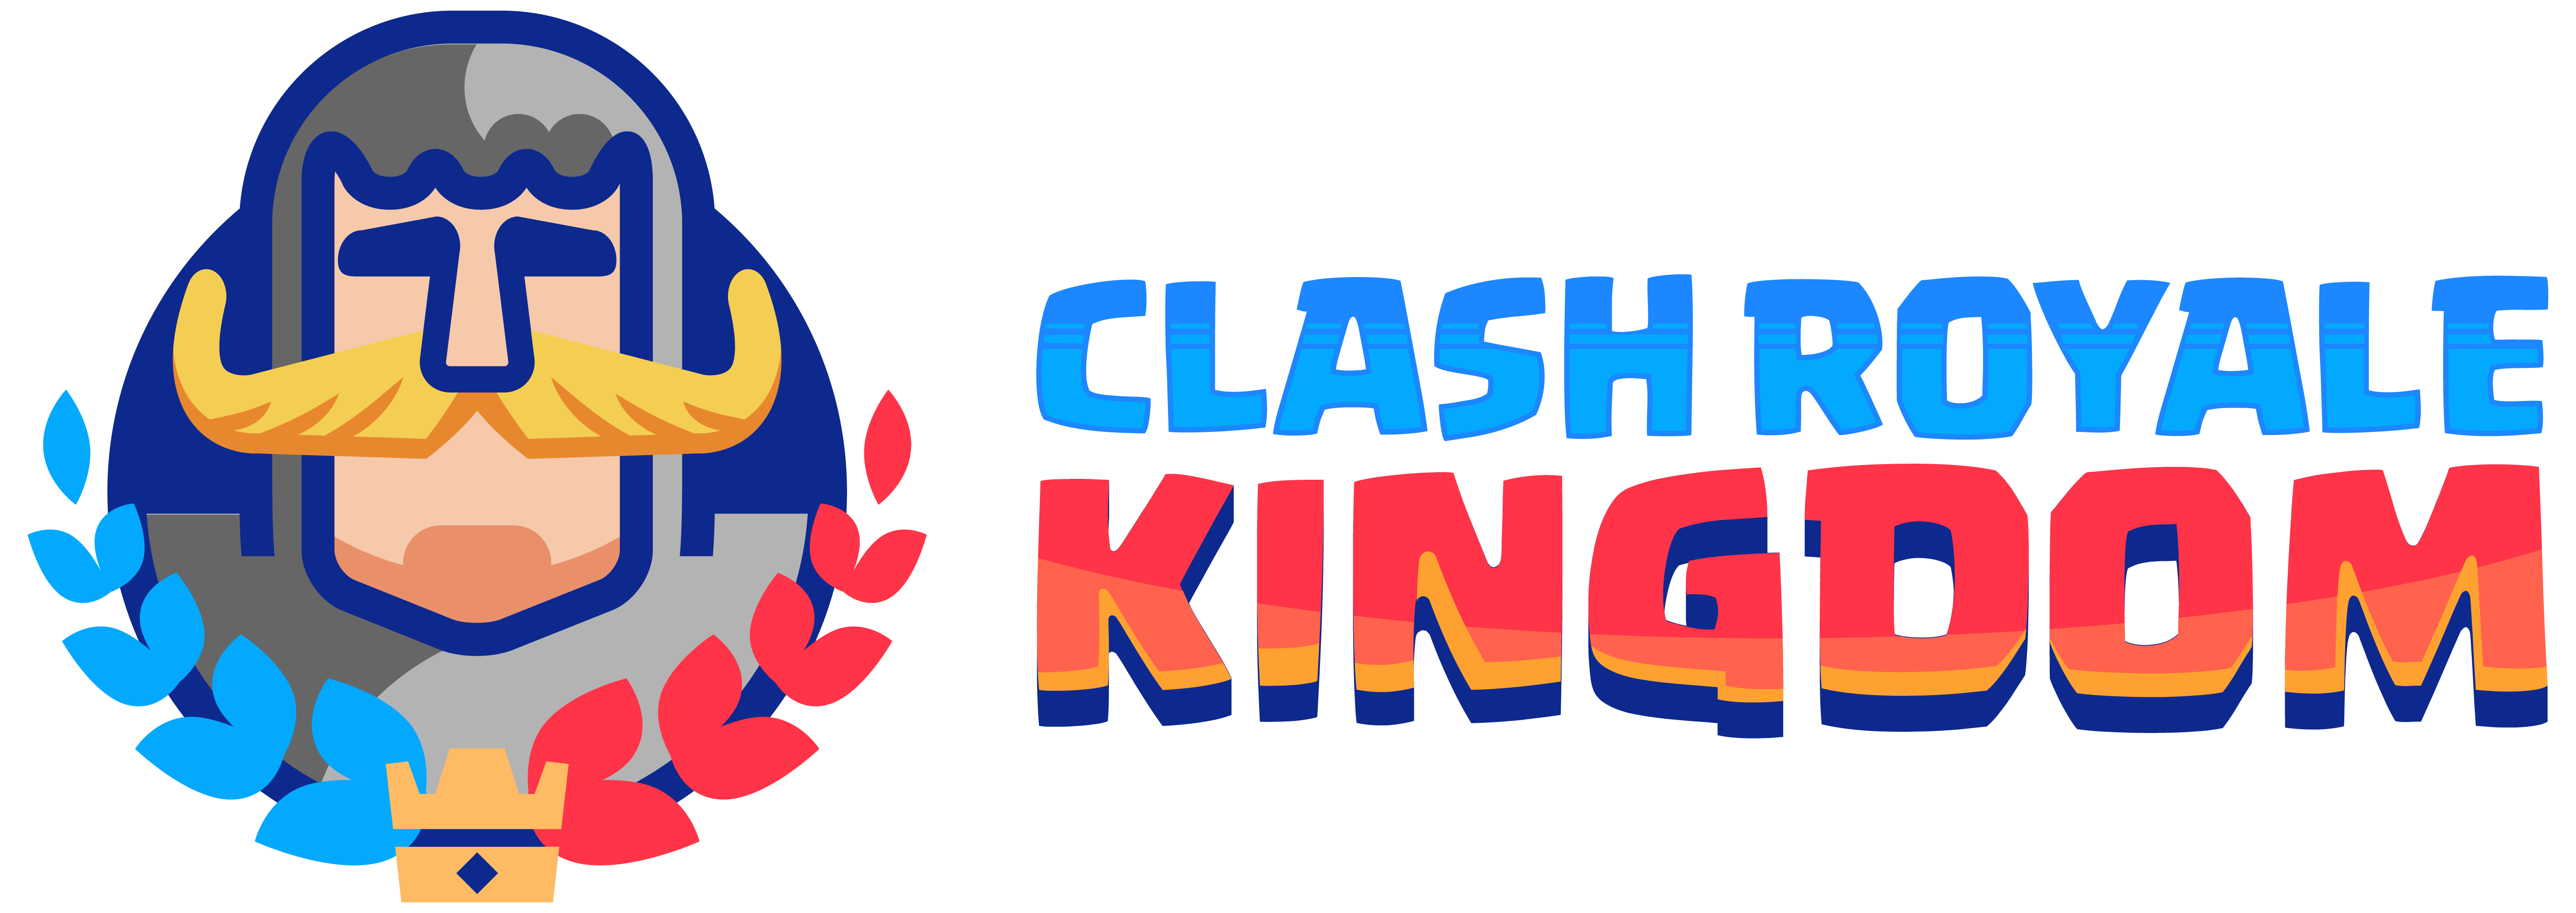 Clash royale log png. Of clans fortnite battle